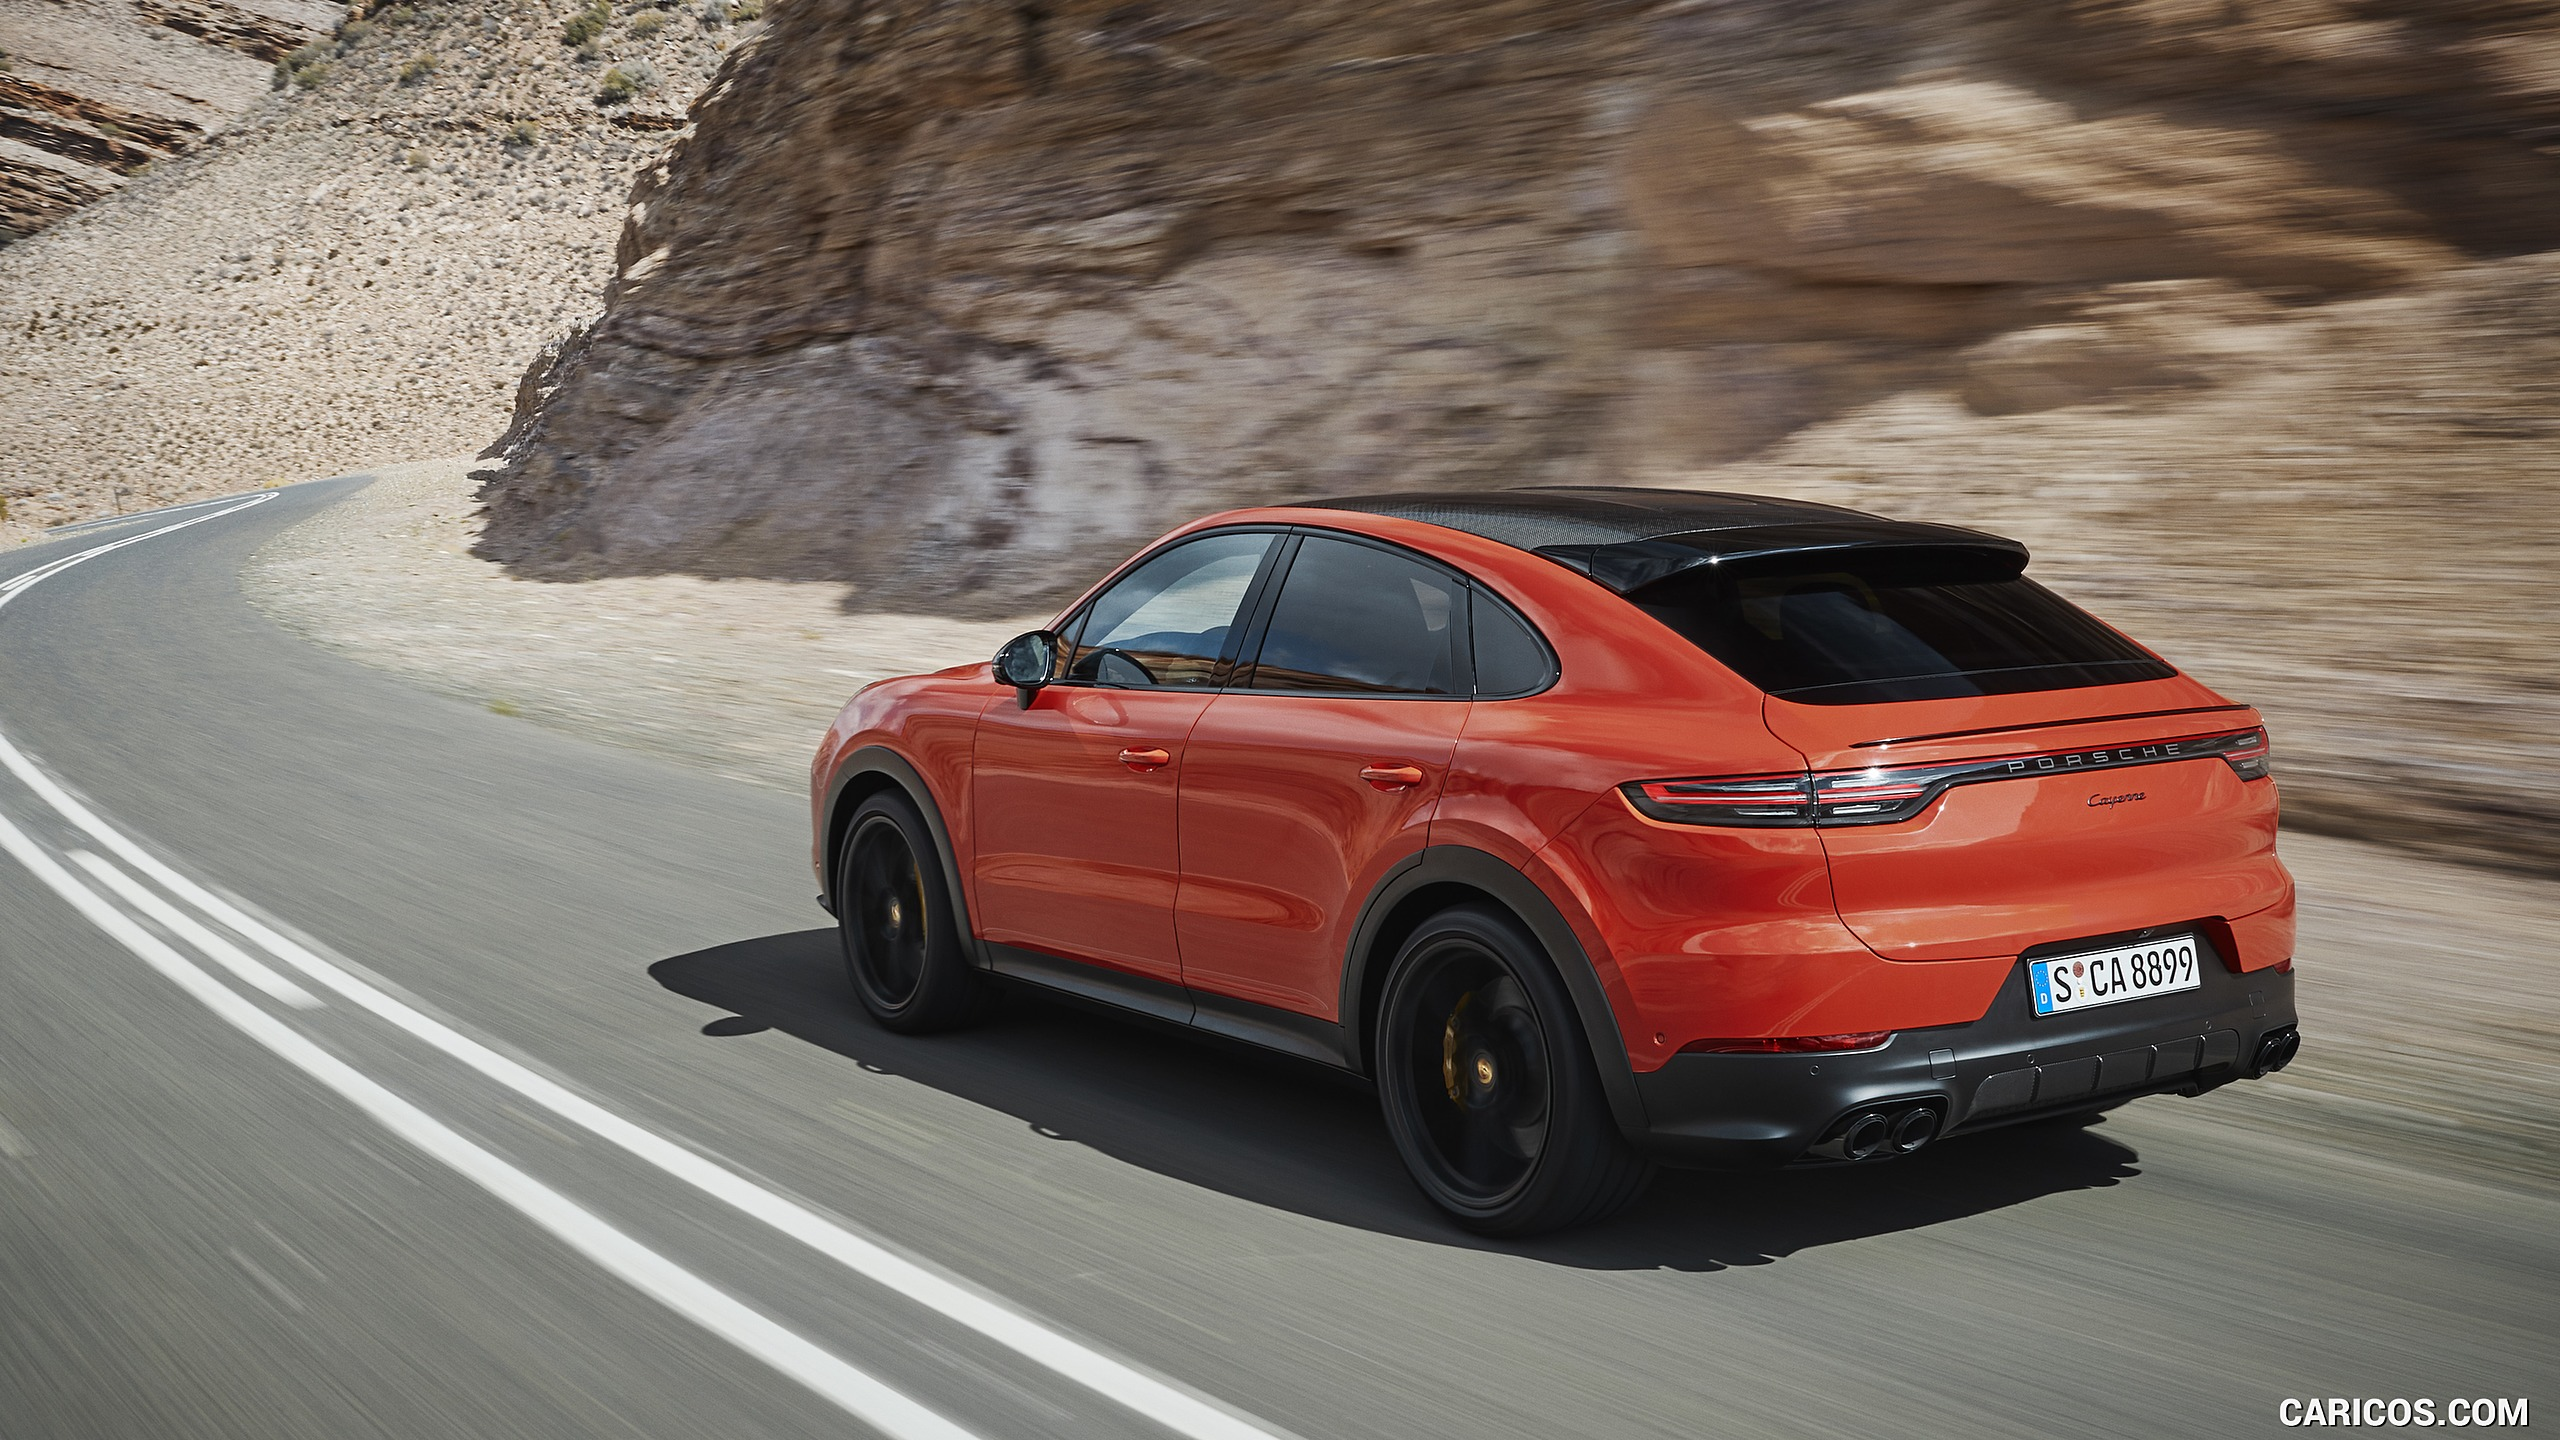 2020 Porsche Cayenne Coupe   Rear Three Quarter HD Wallpaper 4 2560x1440